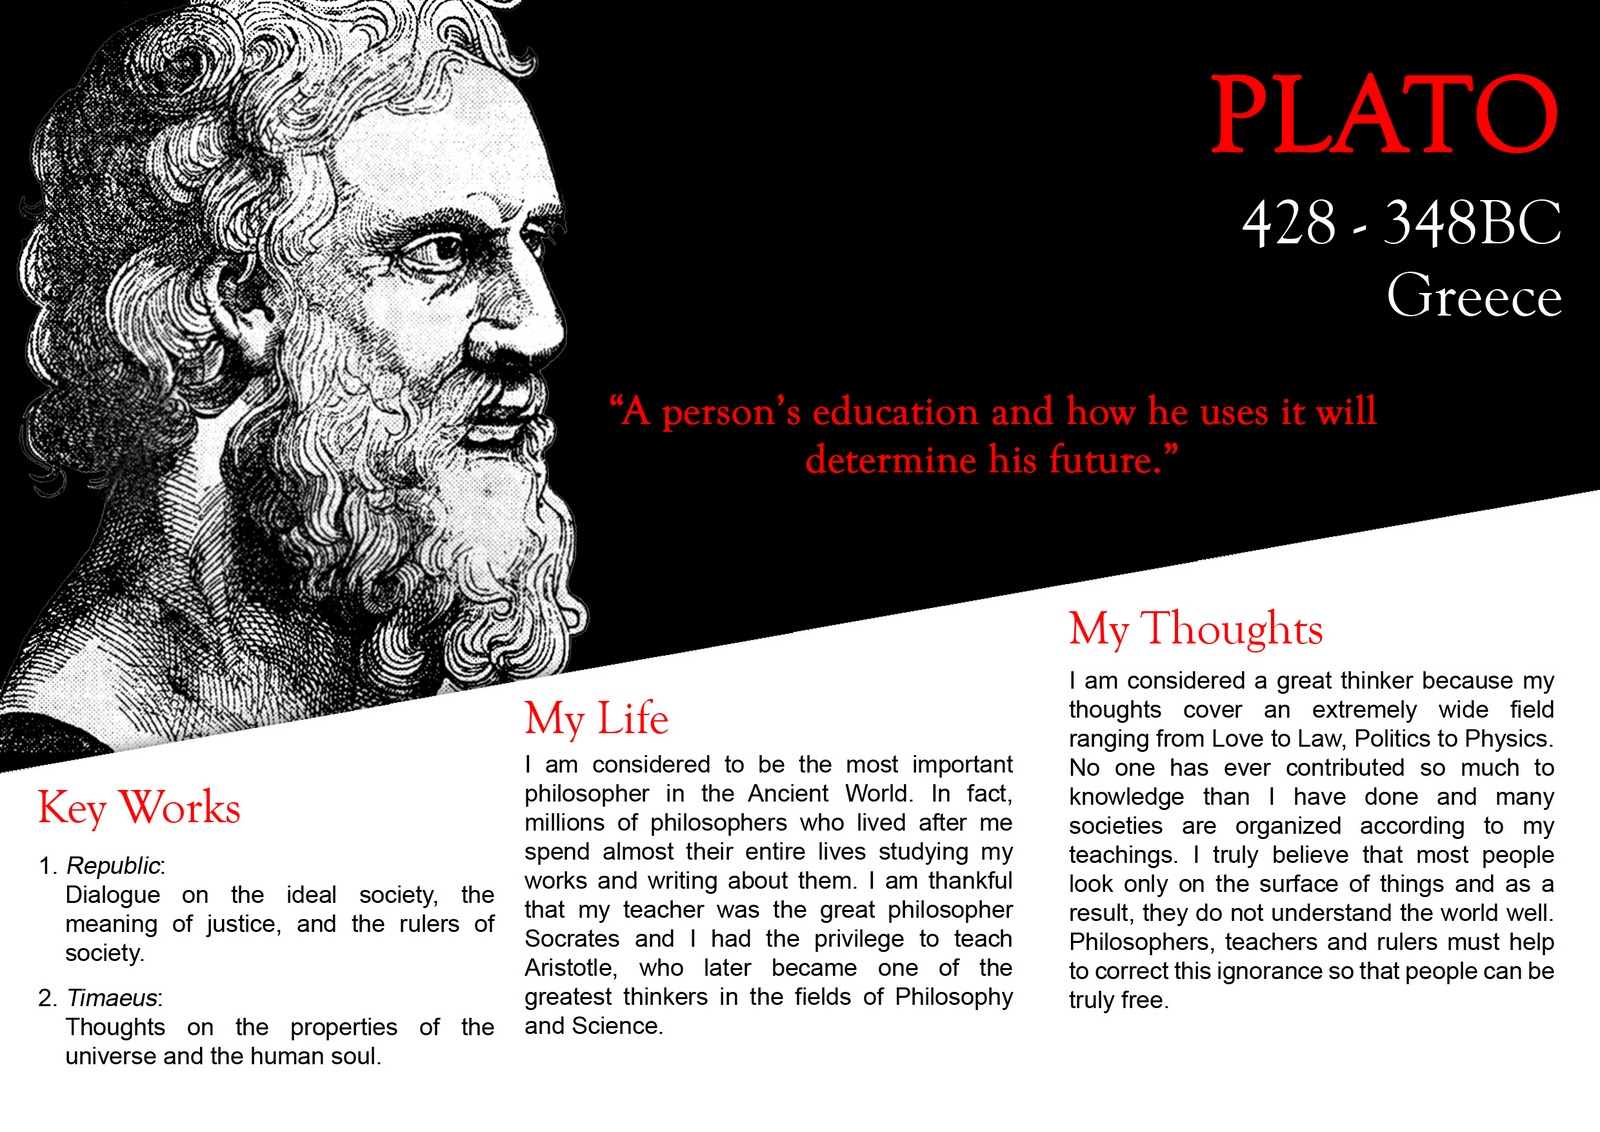 descartes and plato From the philosophical archive for the constructive study of ontological dualism: wwwnewdualismorg soul and body in plato and descartes 1 by sarah broadie quoted from: proceedings of the aristotelian society (hardback), 102 (2001) 295.